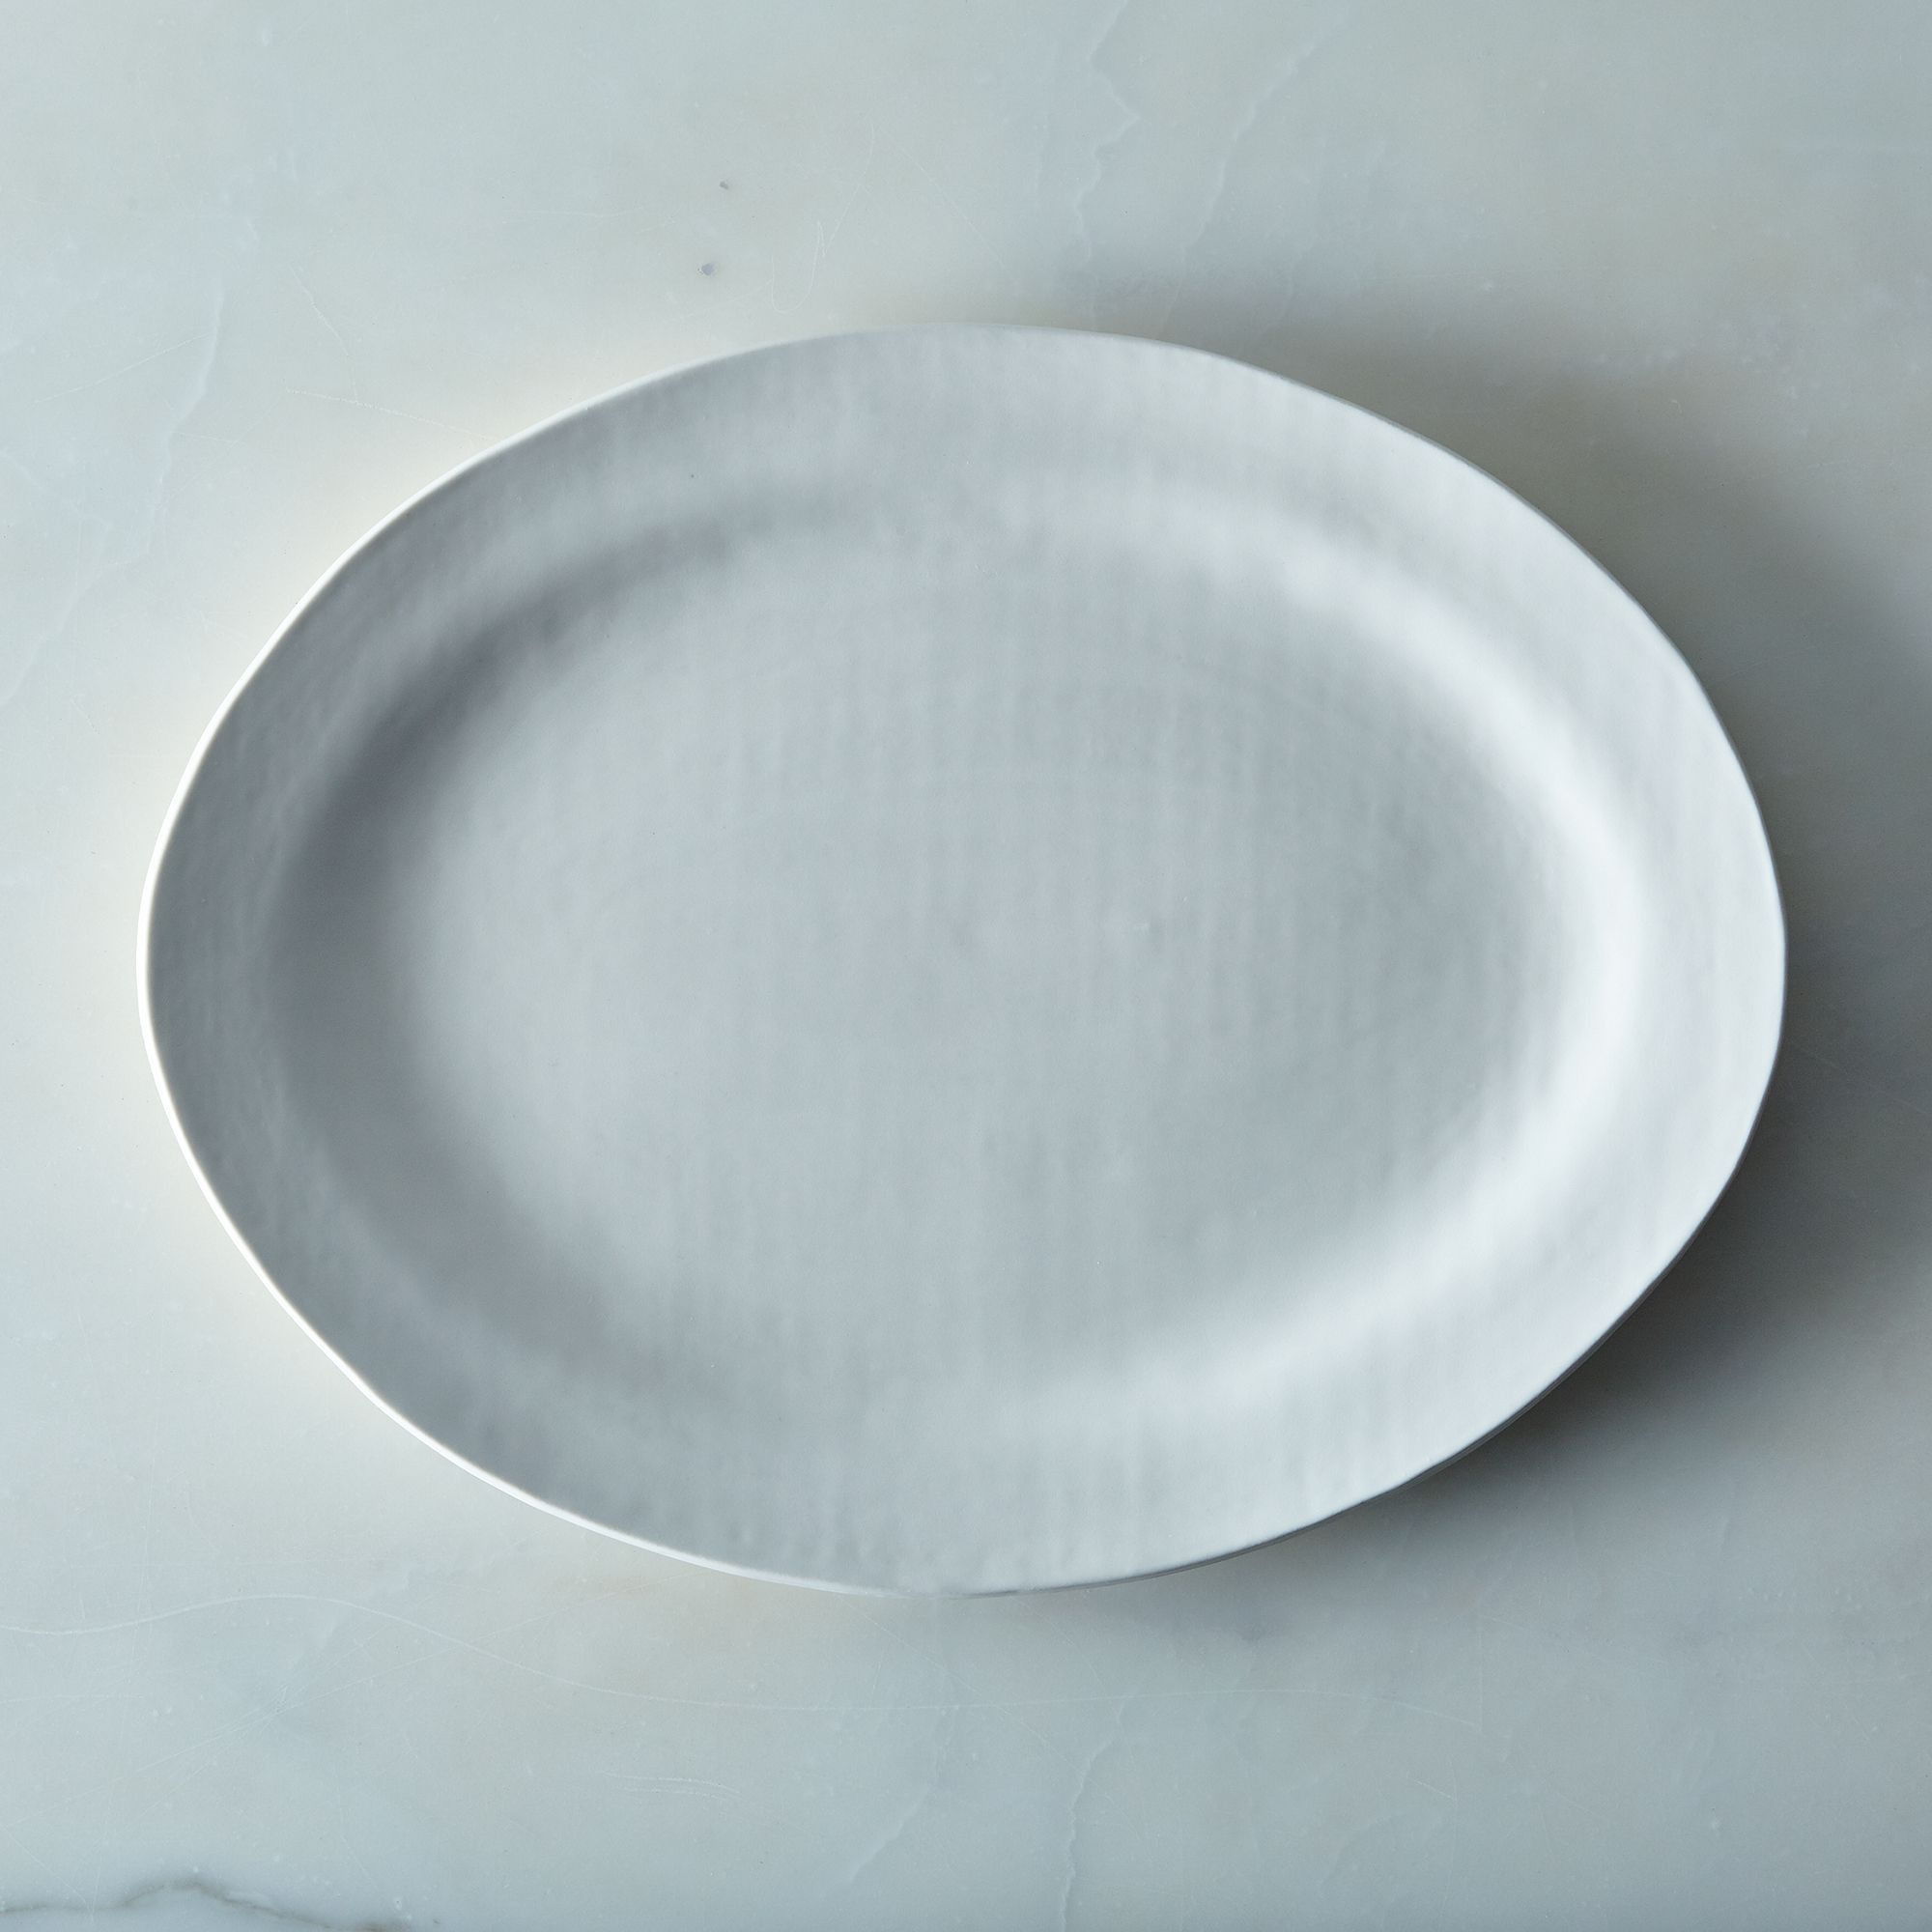 03a0aefd 3b80 42af aa48 c37cd479b43a  2016 0506 looks like white handmade oval serving platter large silo rocky luten 003